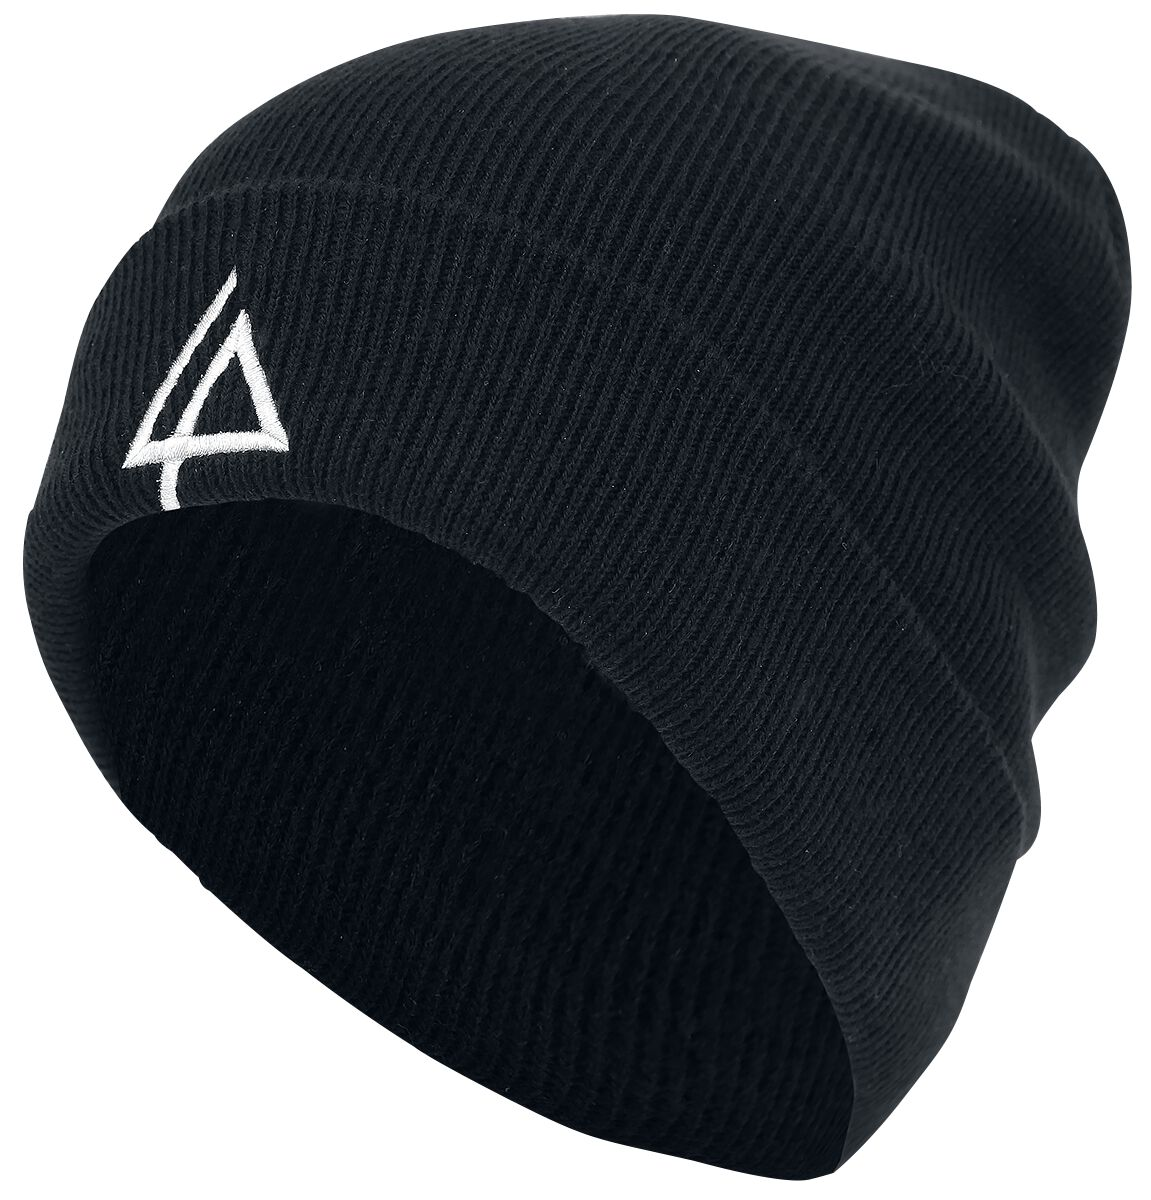 Image of   Linkin Park Logo Beanie sort